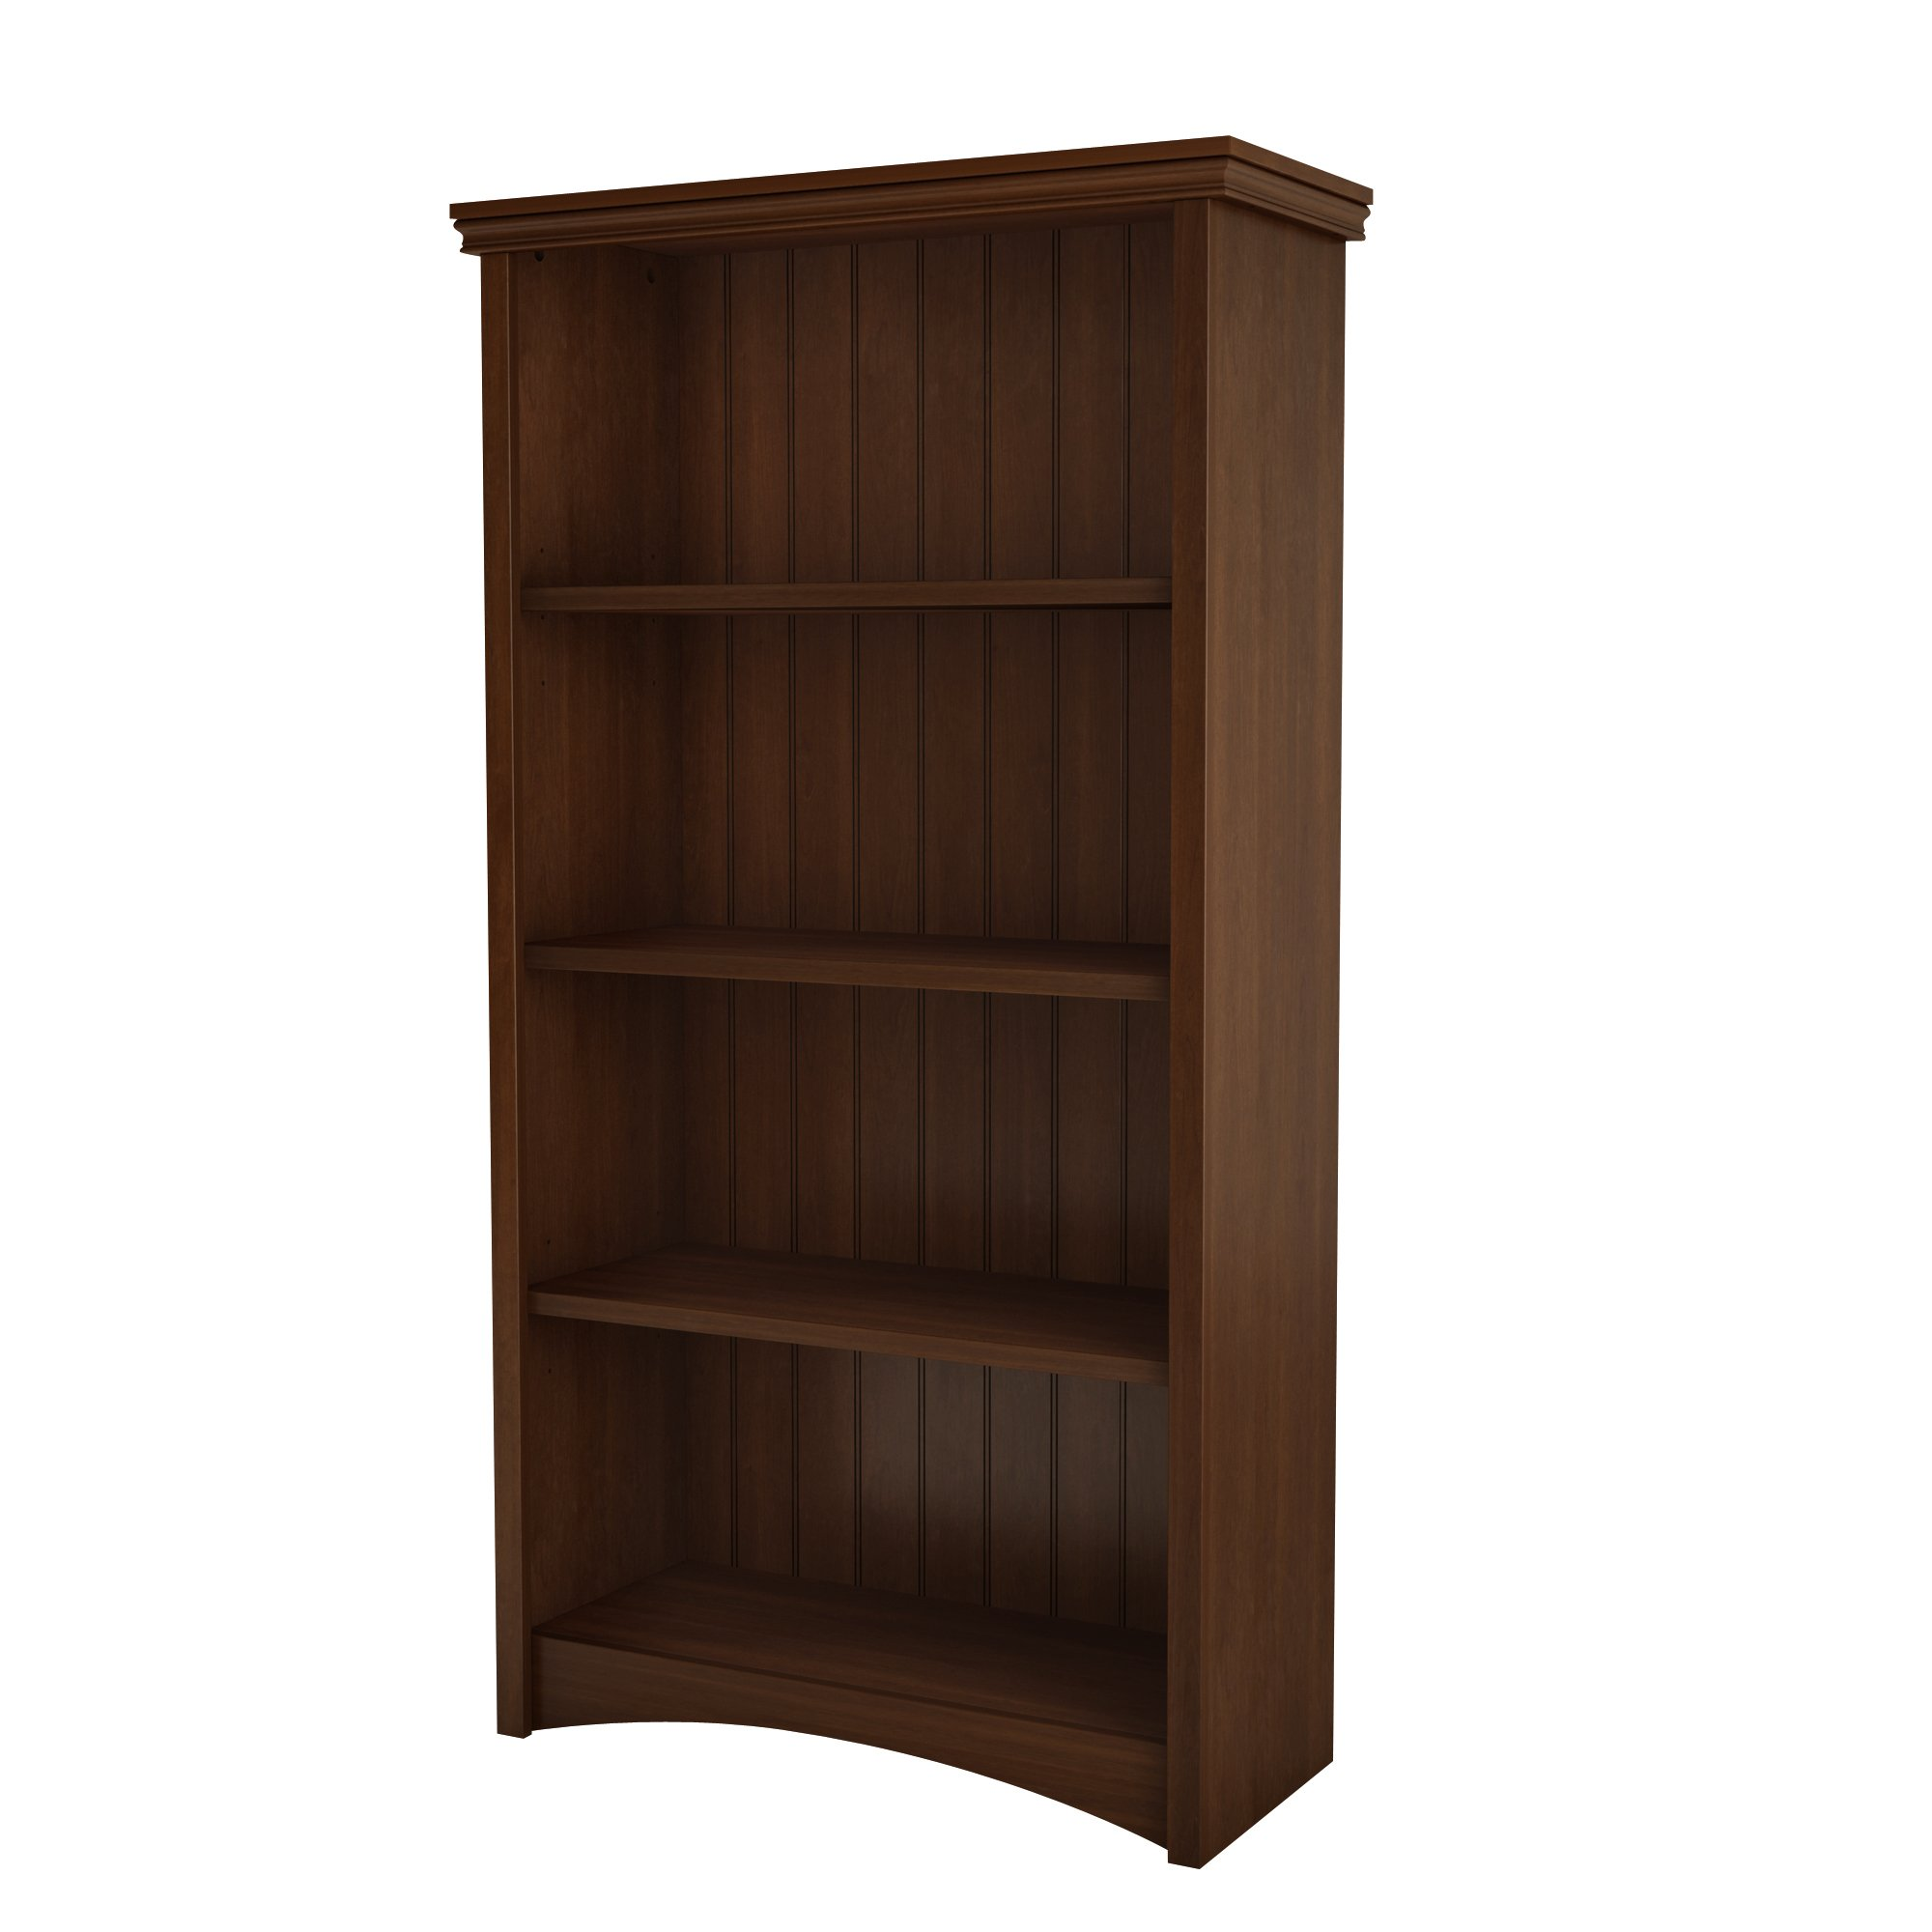 South Shore Furniture Gascony Collection Bookcase, Sumptuous Cherry by South Shore